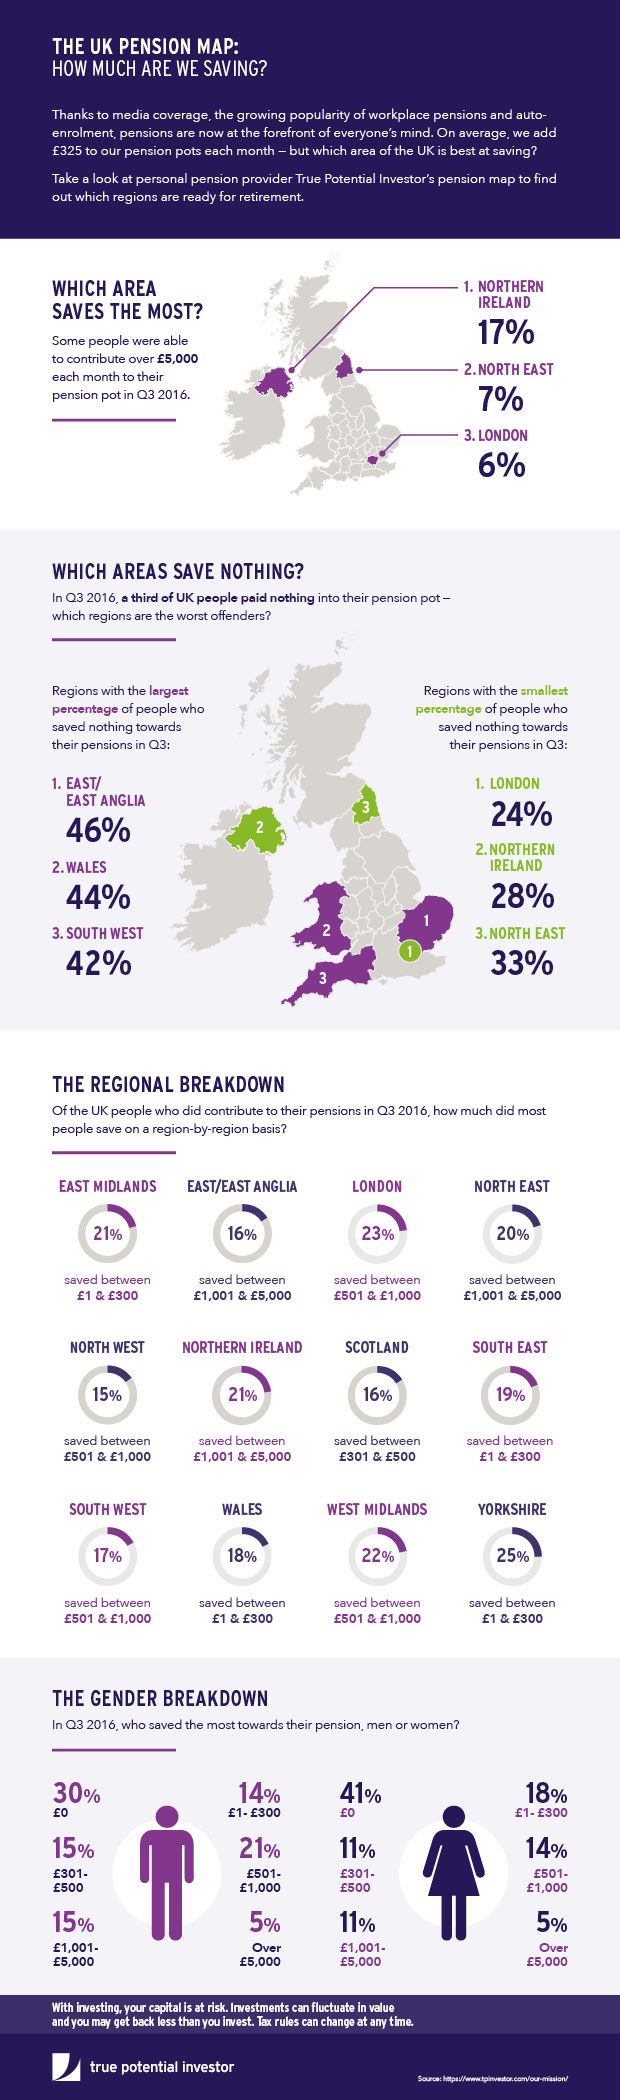 UK Pension Map Graphic: Brought To You by Online Investment Company